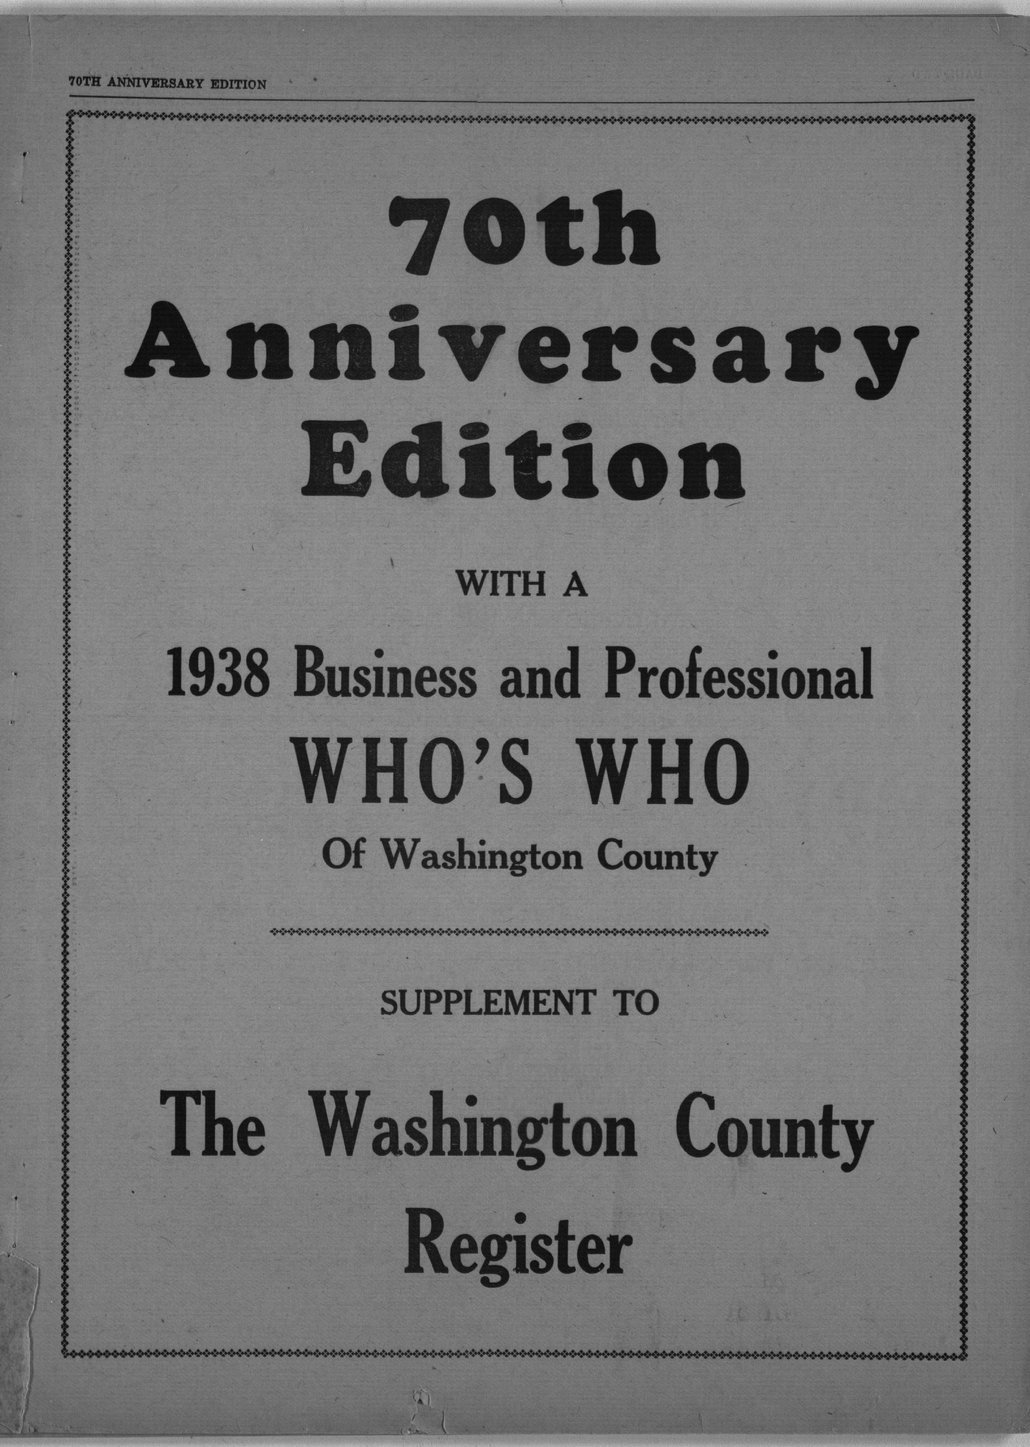 70th anniversary edition supplement to the Washington County Register - 1